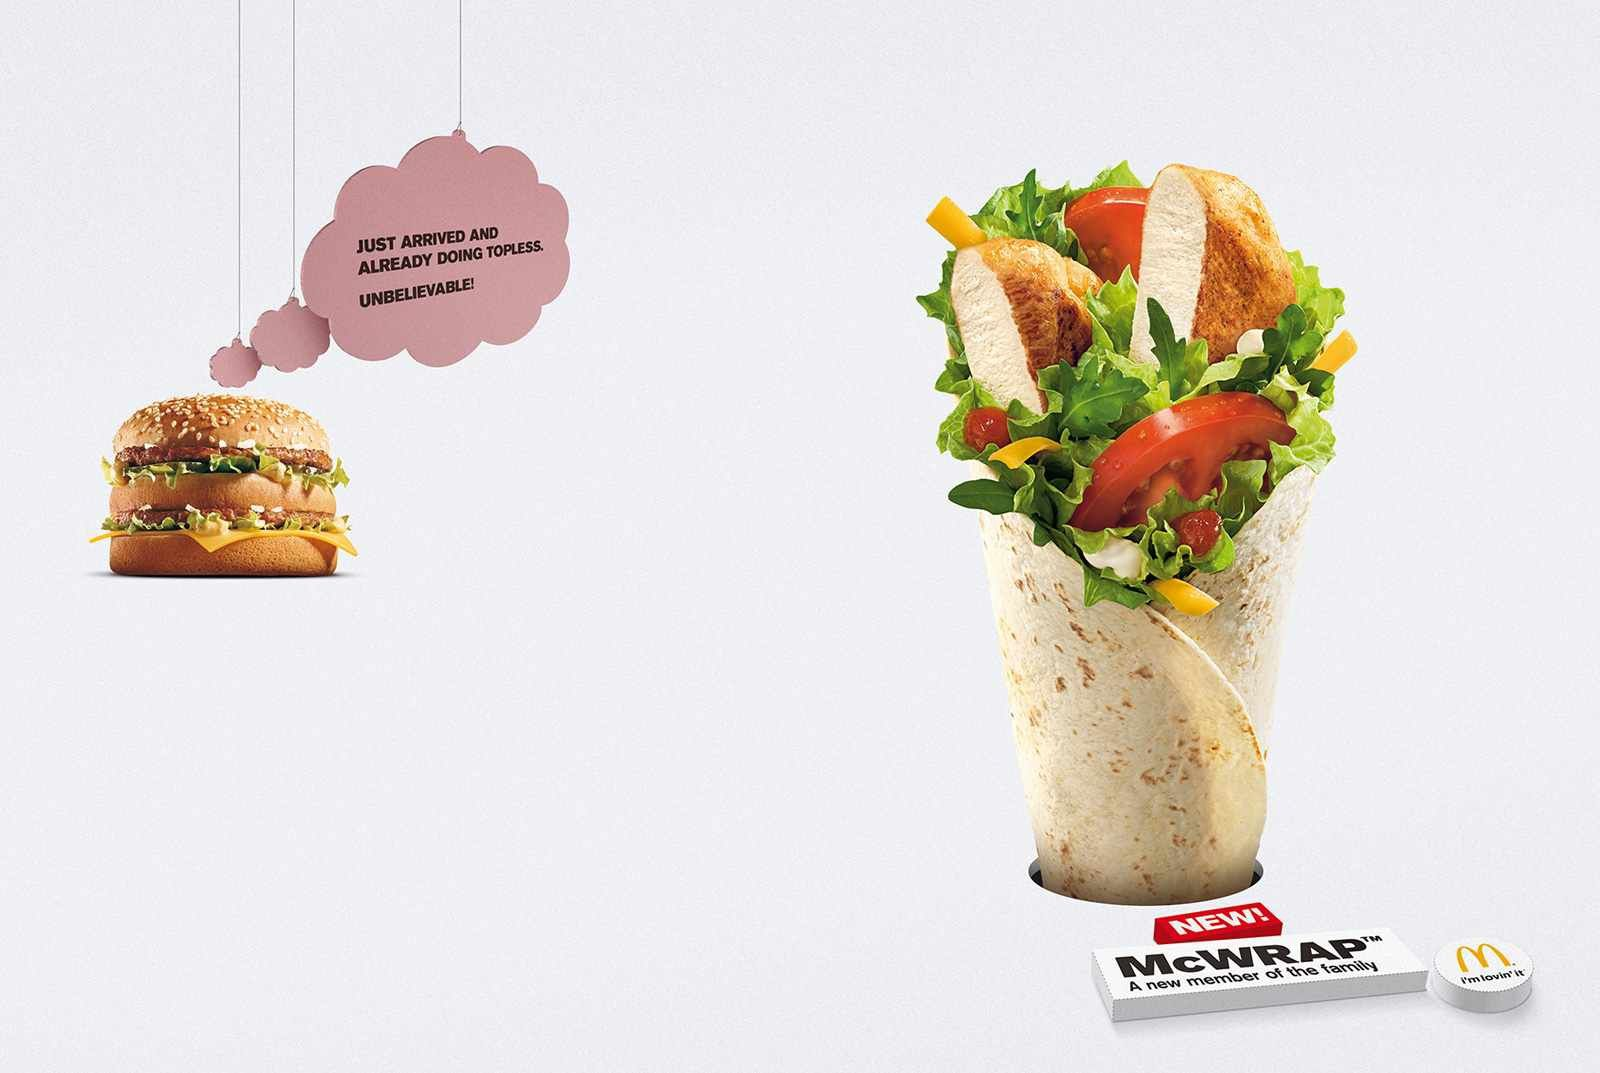 """McWrap, a new member of the family"" (n°1 : ""Just arrived and already doing topless. Unbelievable !"" &#x3B; n°2 :""I don't want to talk behind his back... but what a mess !"" 